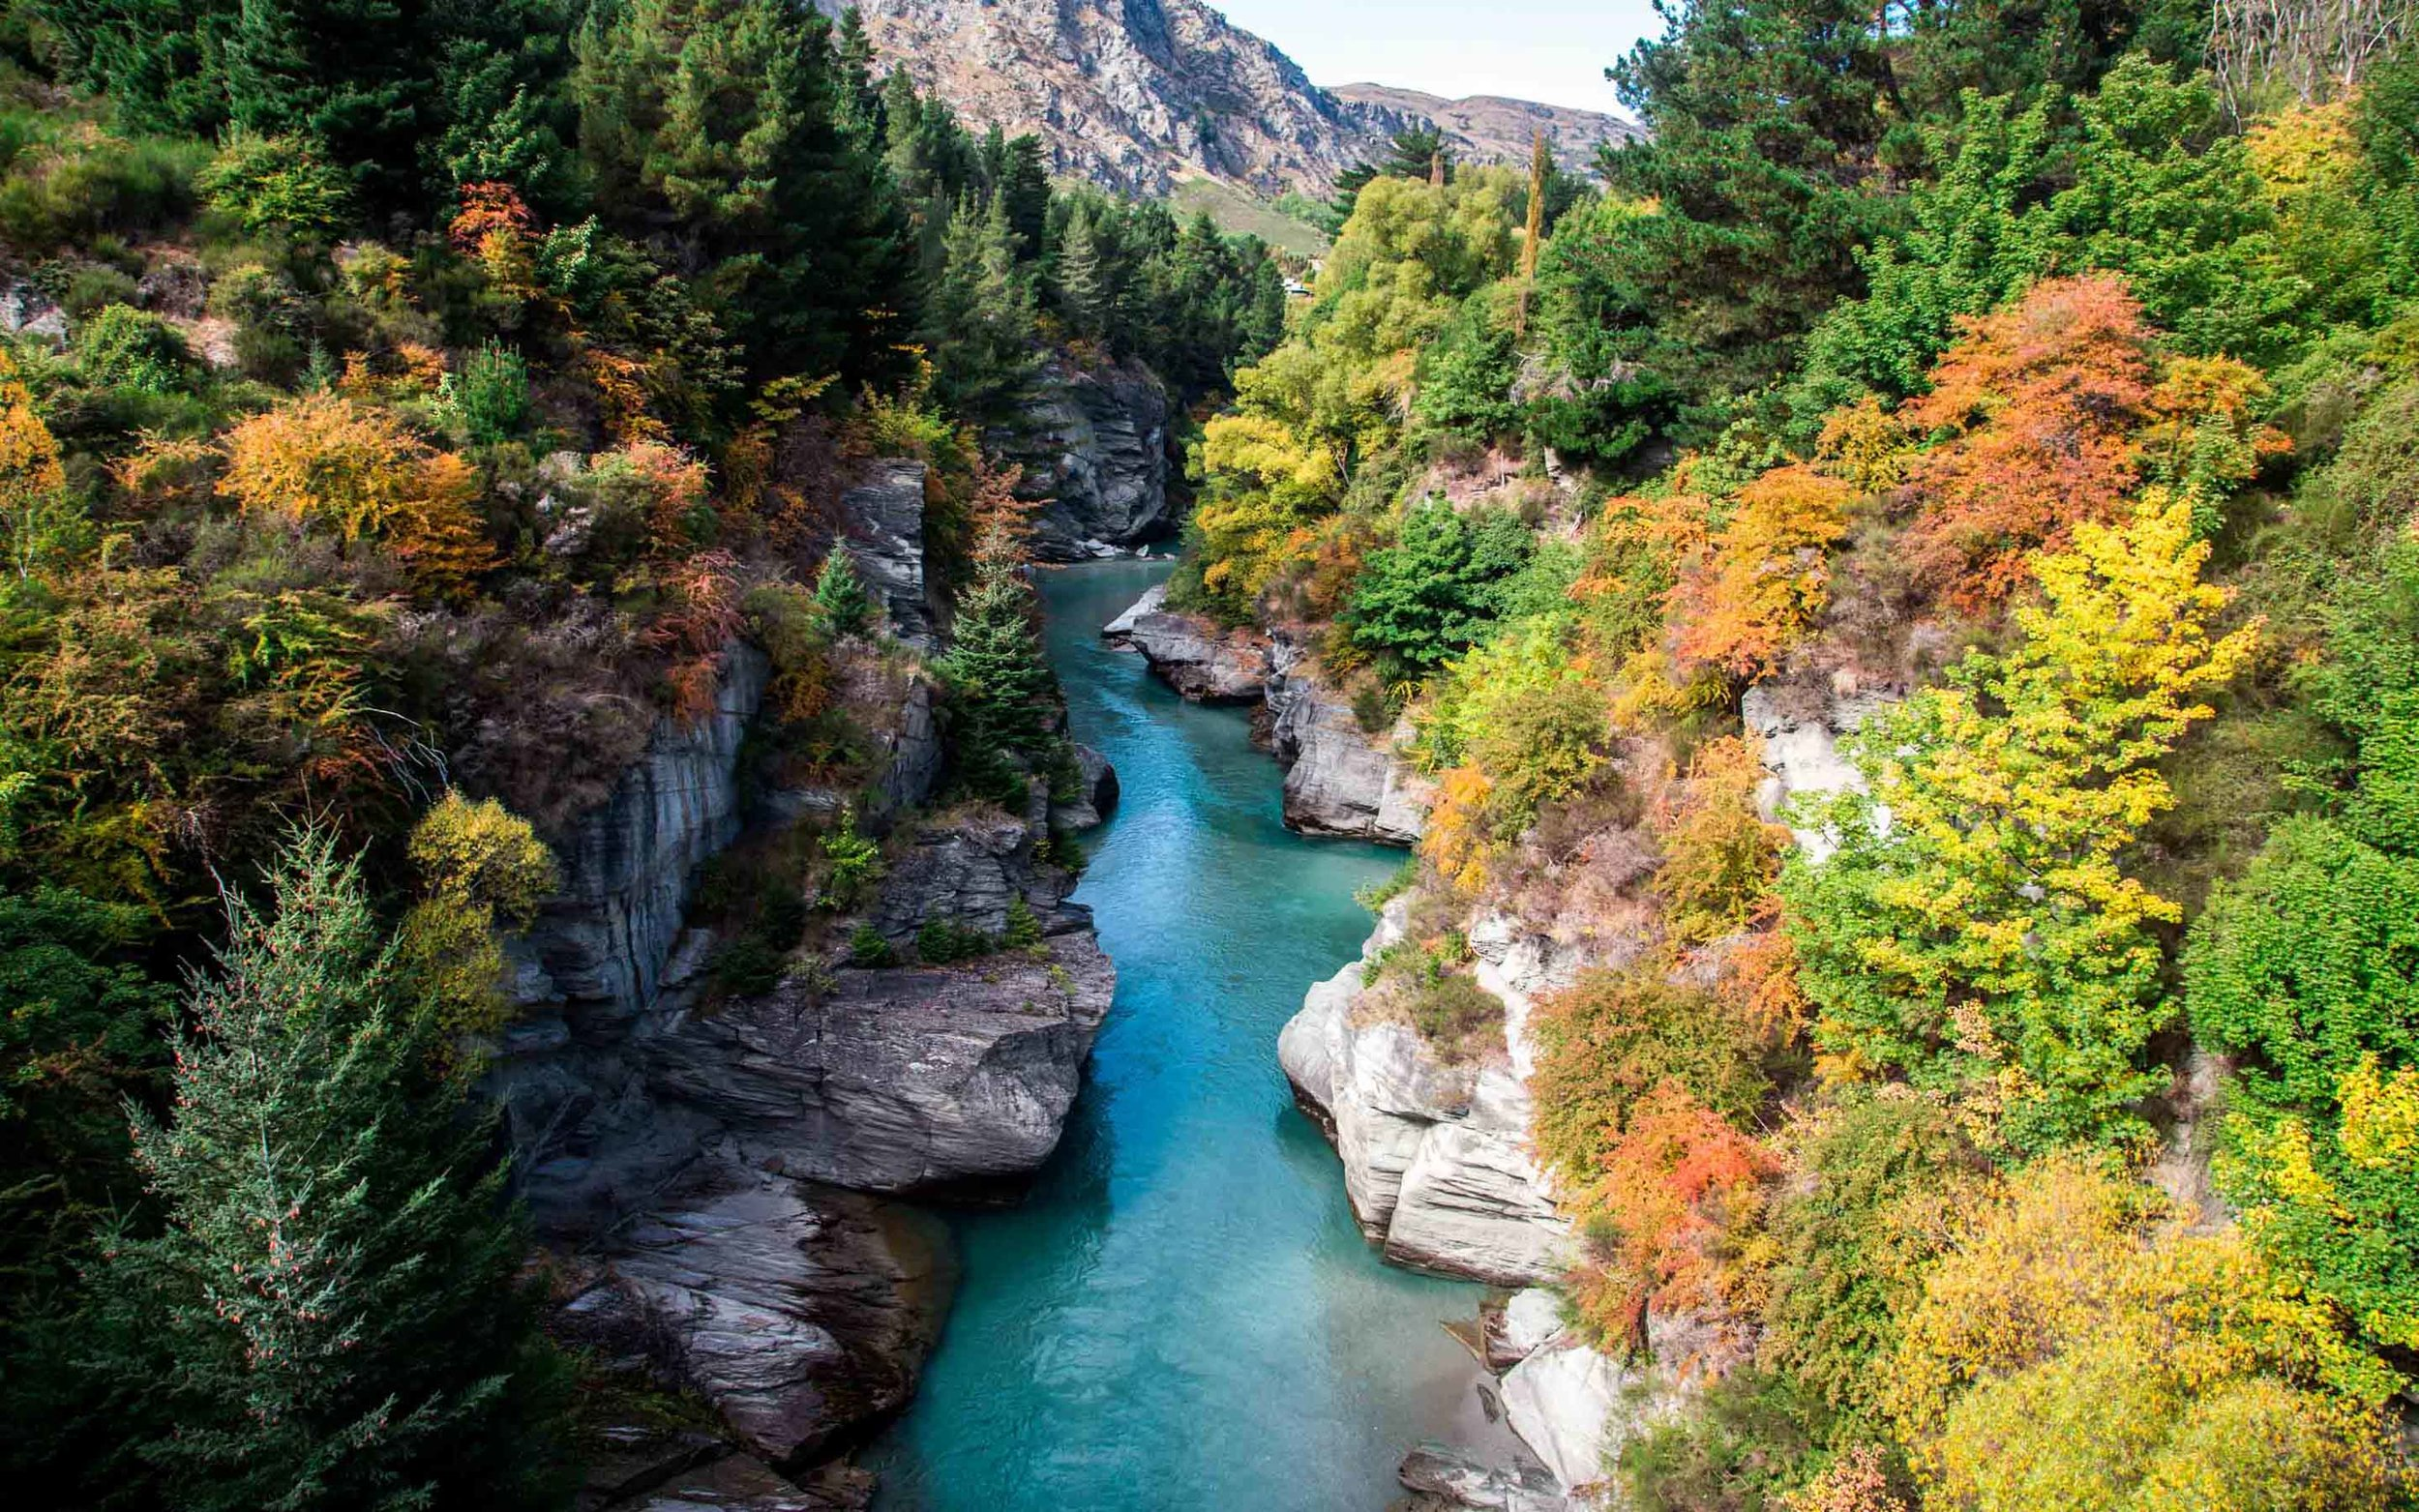 Shotover River in Autumn